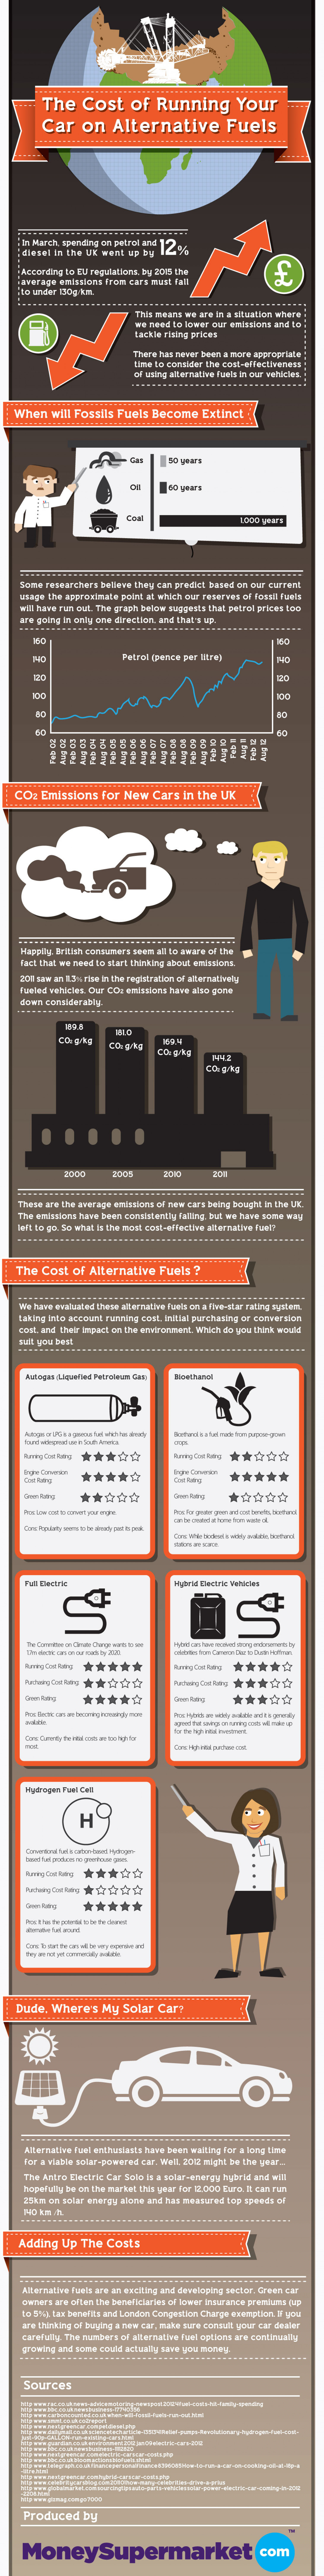 The Cost of Running your Car on Alternative Fuels Infographic